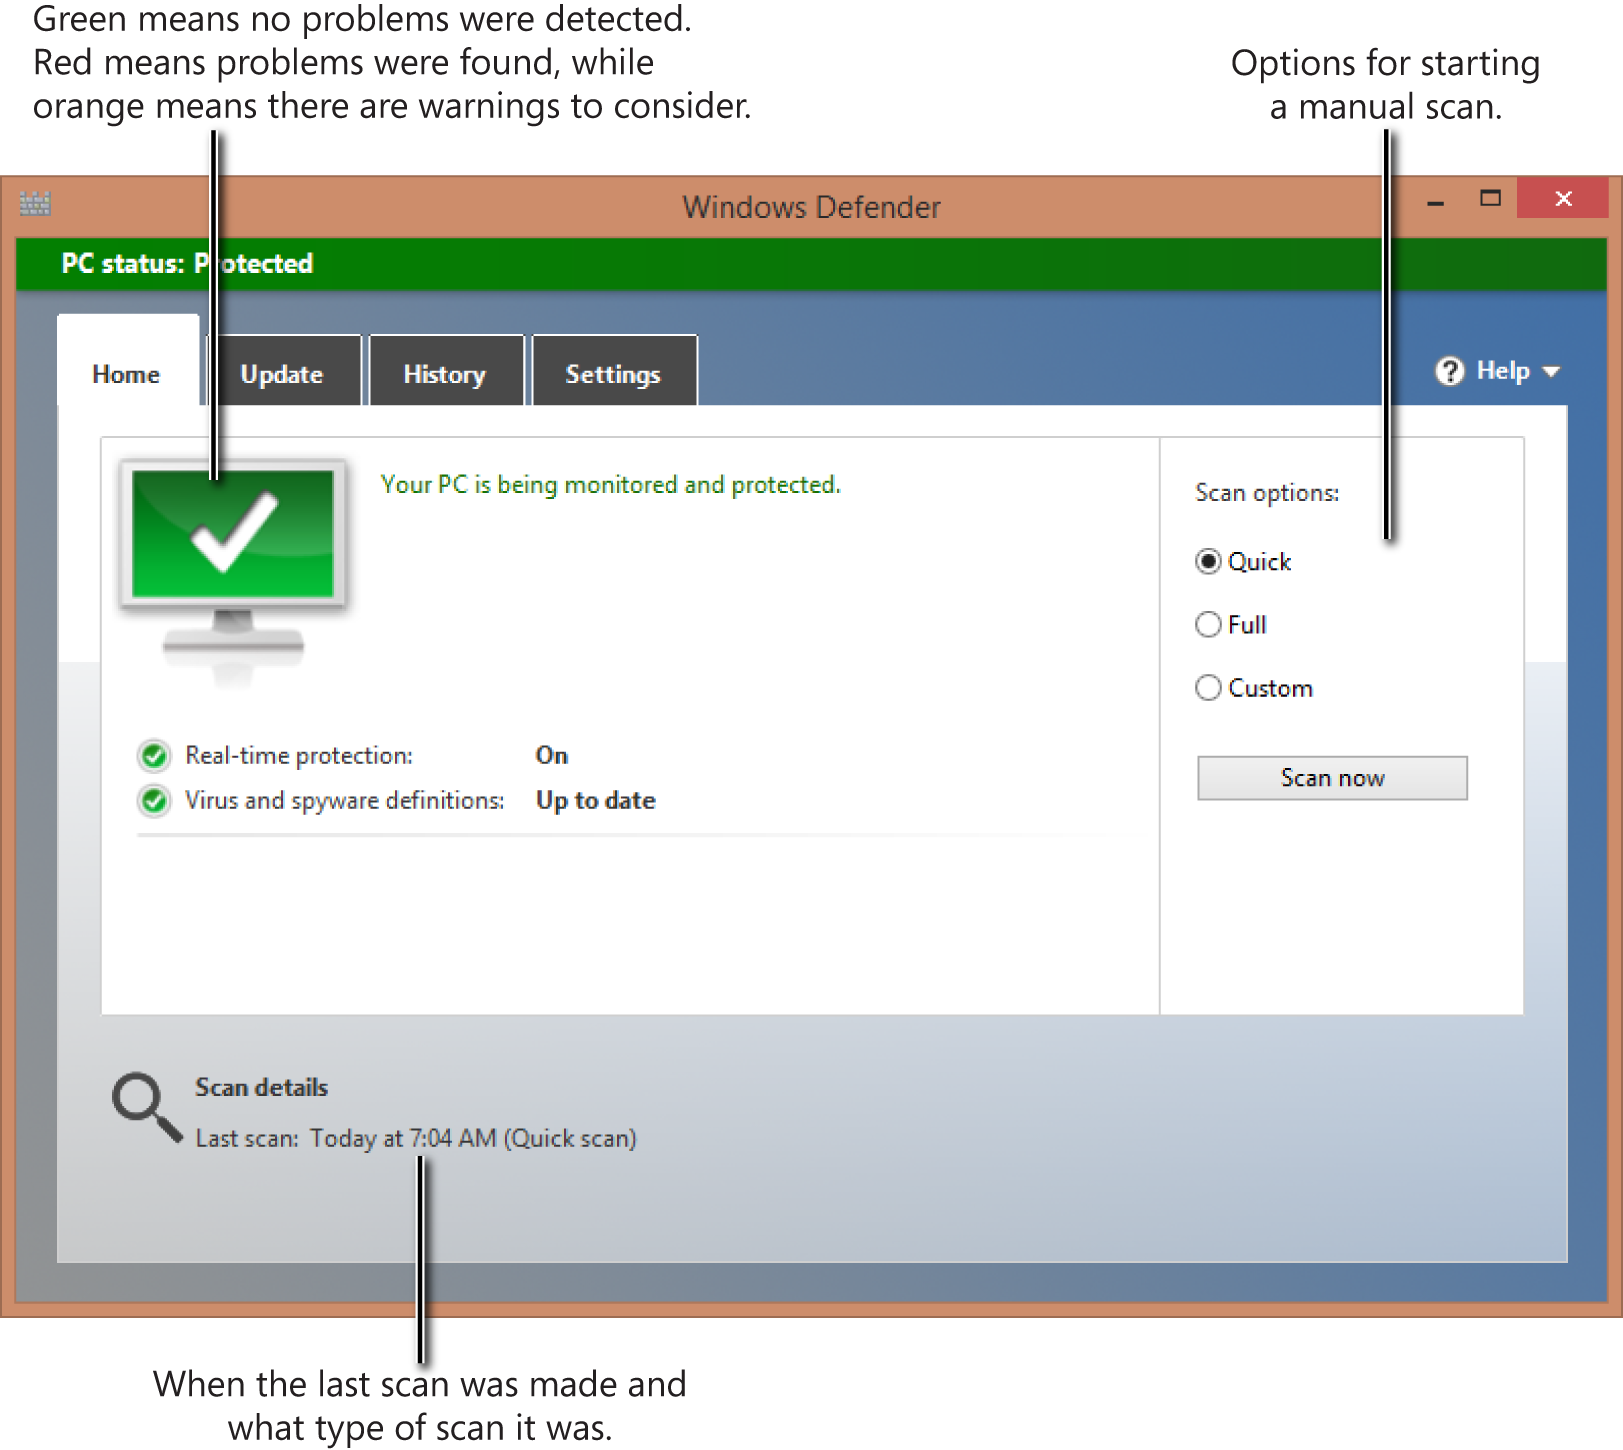 The Windows Defender interface is simple and easy to use.